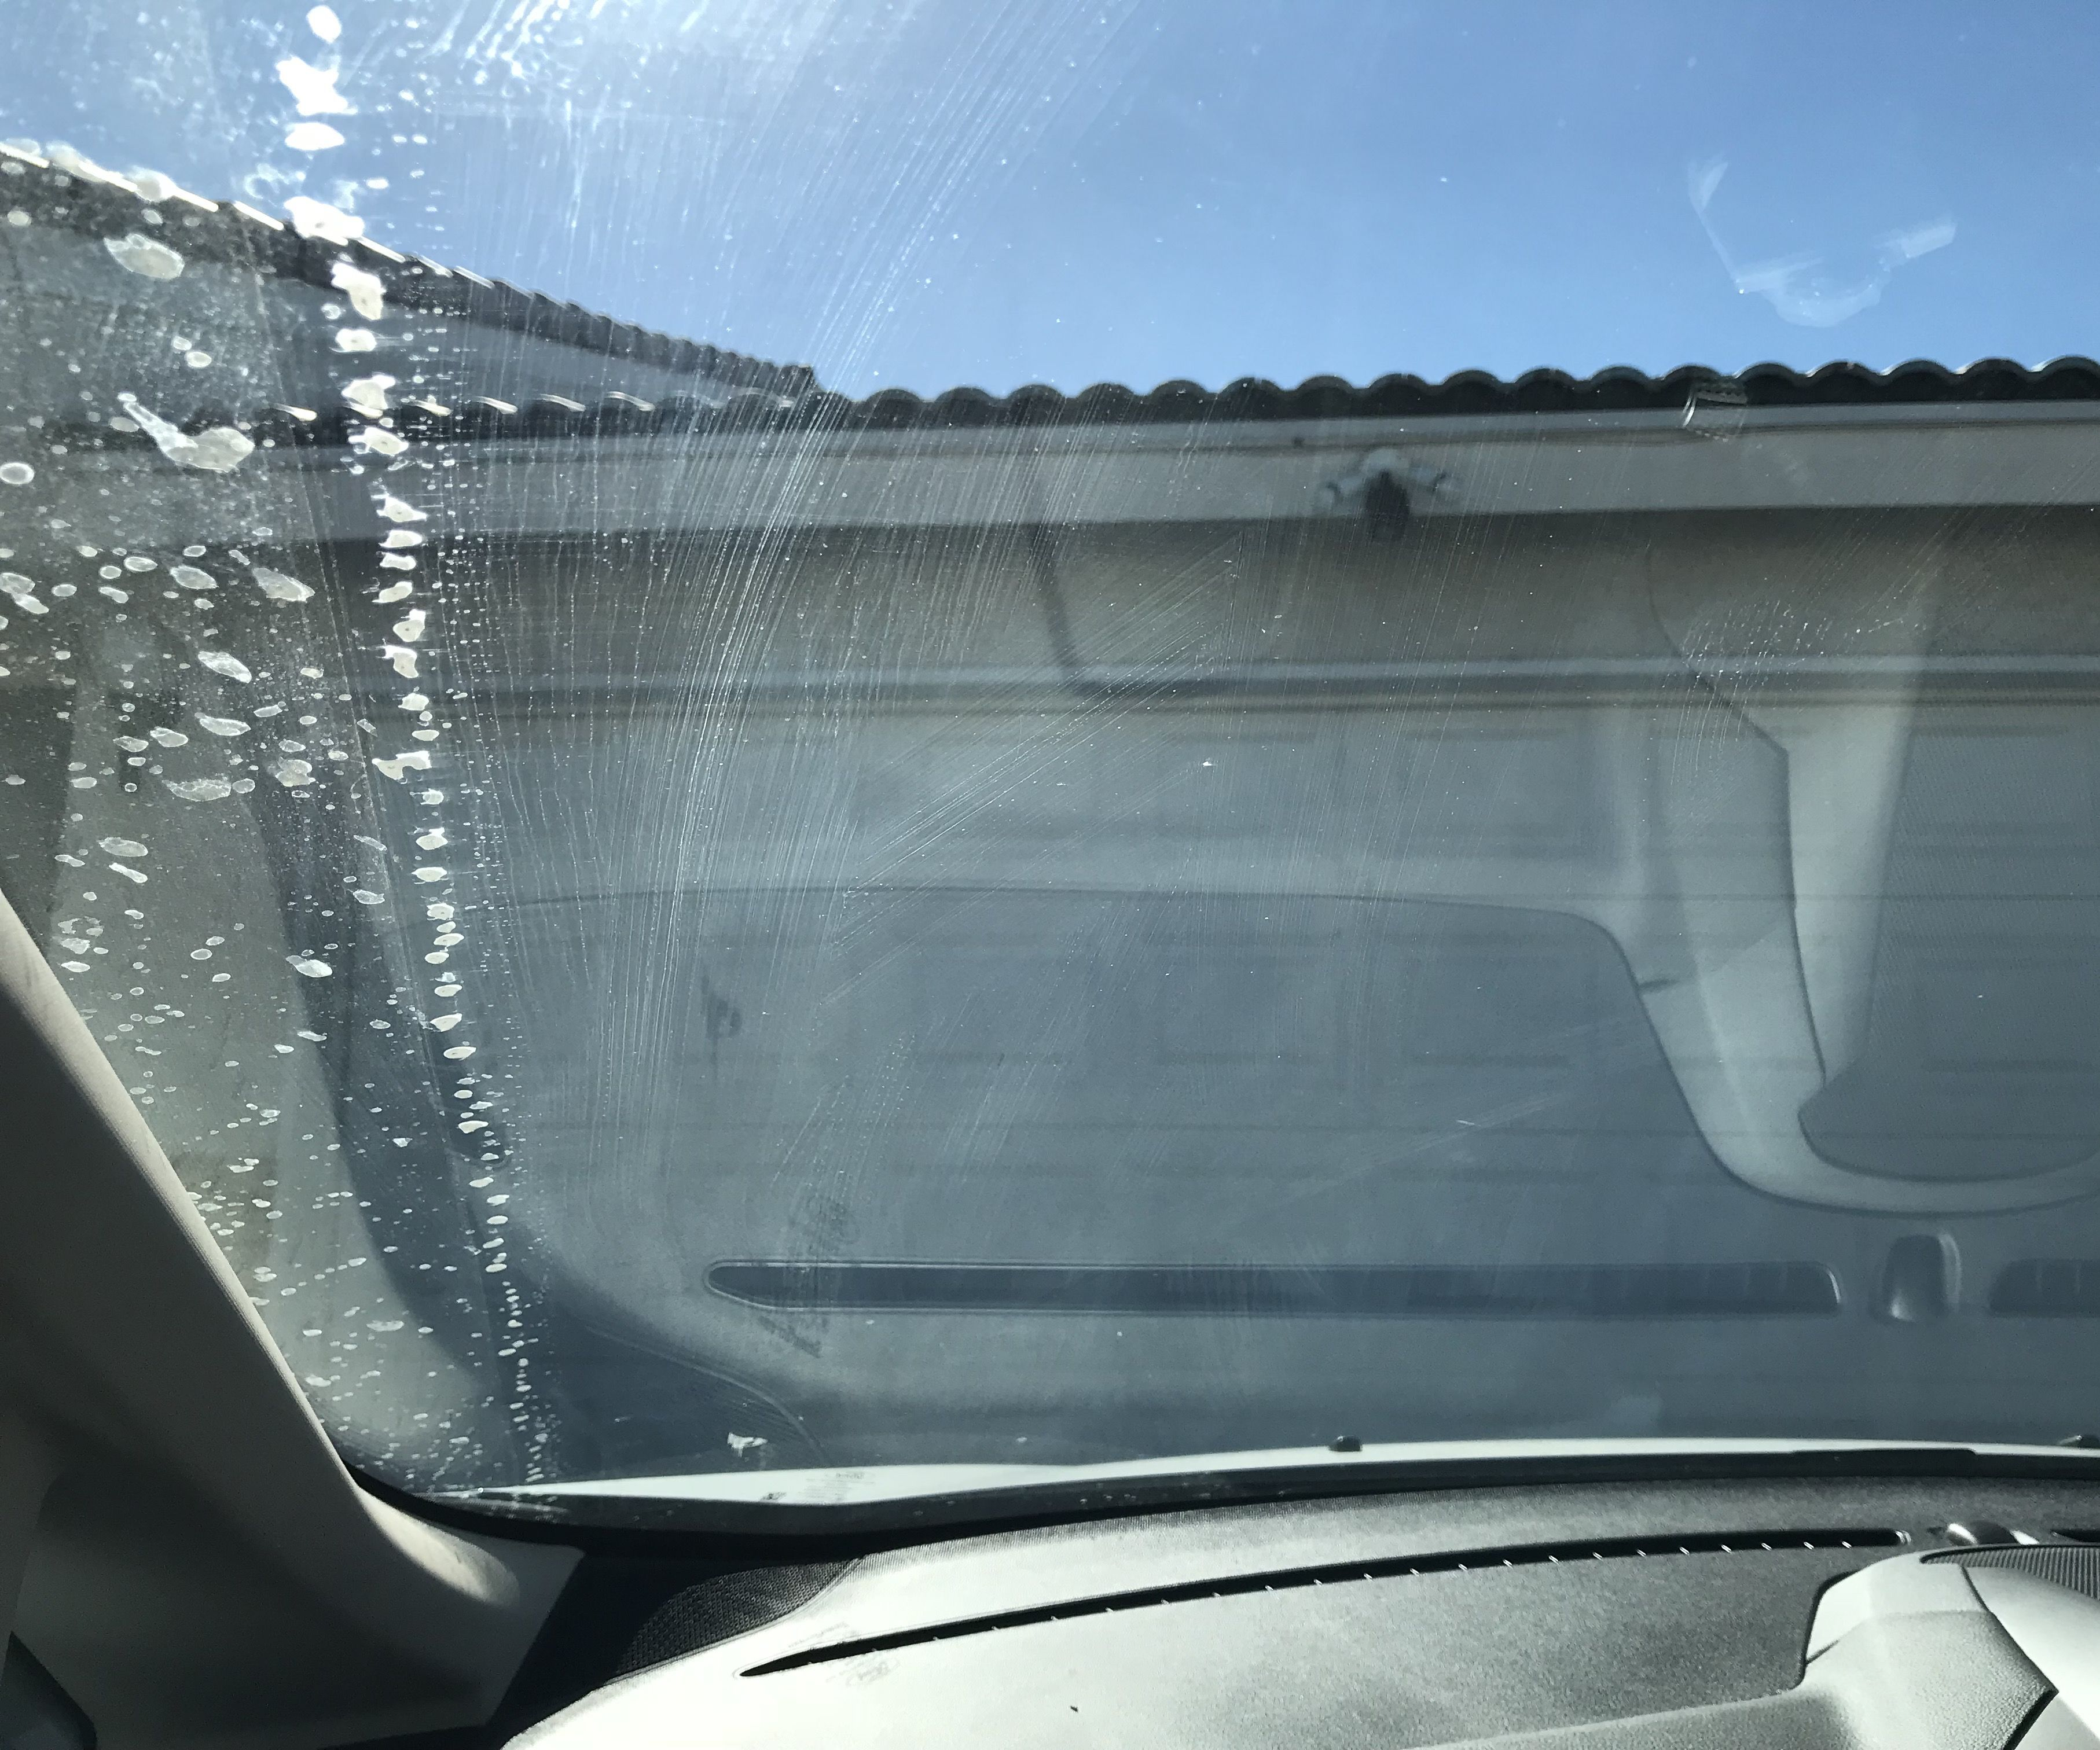 THE $10 RETRACTABLE WINDSHIELD CLEANER